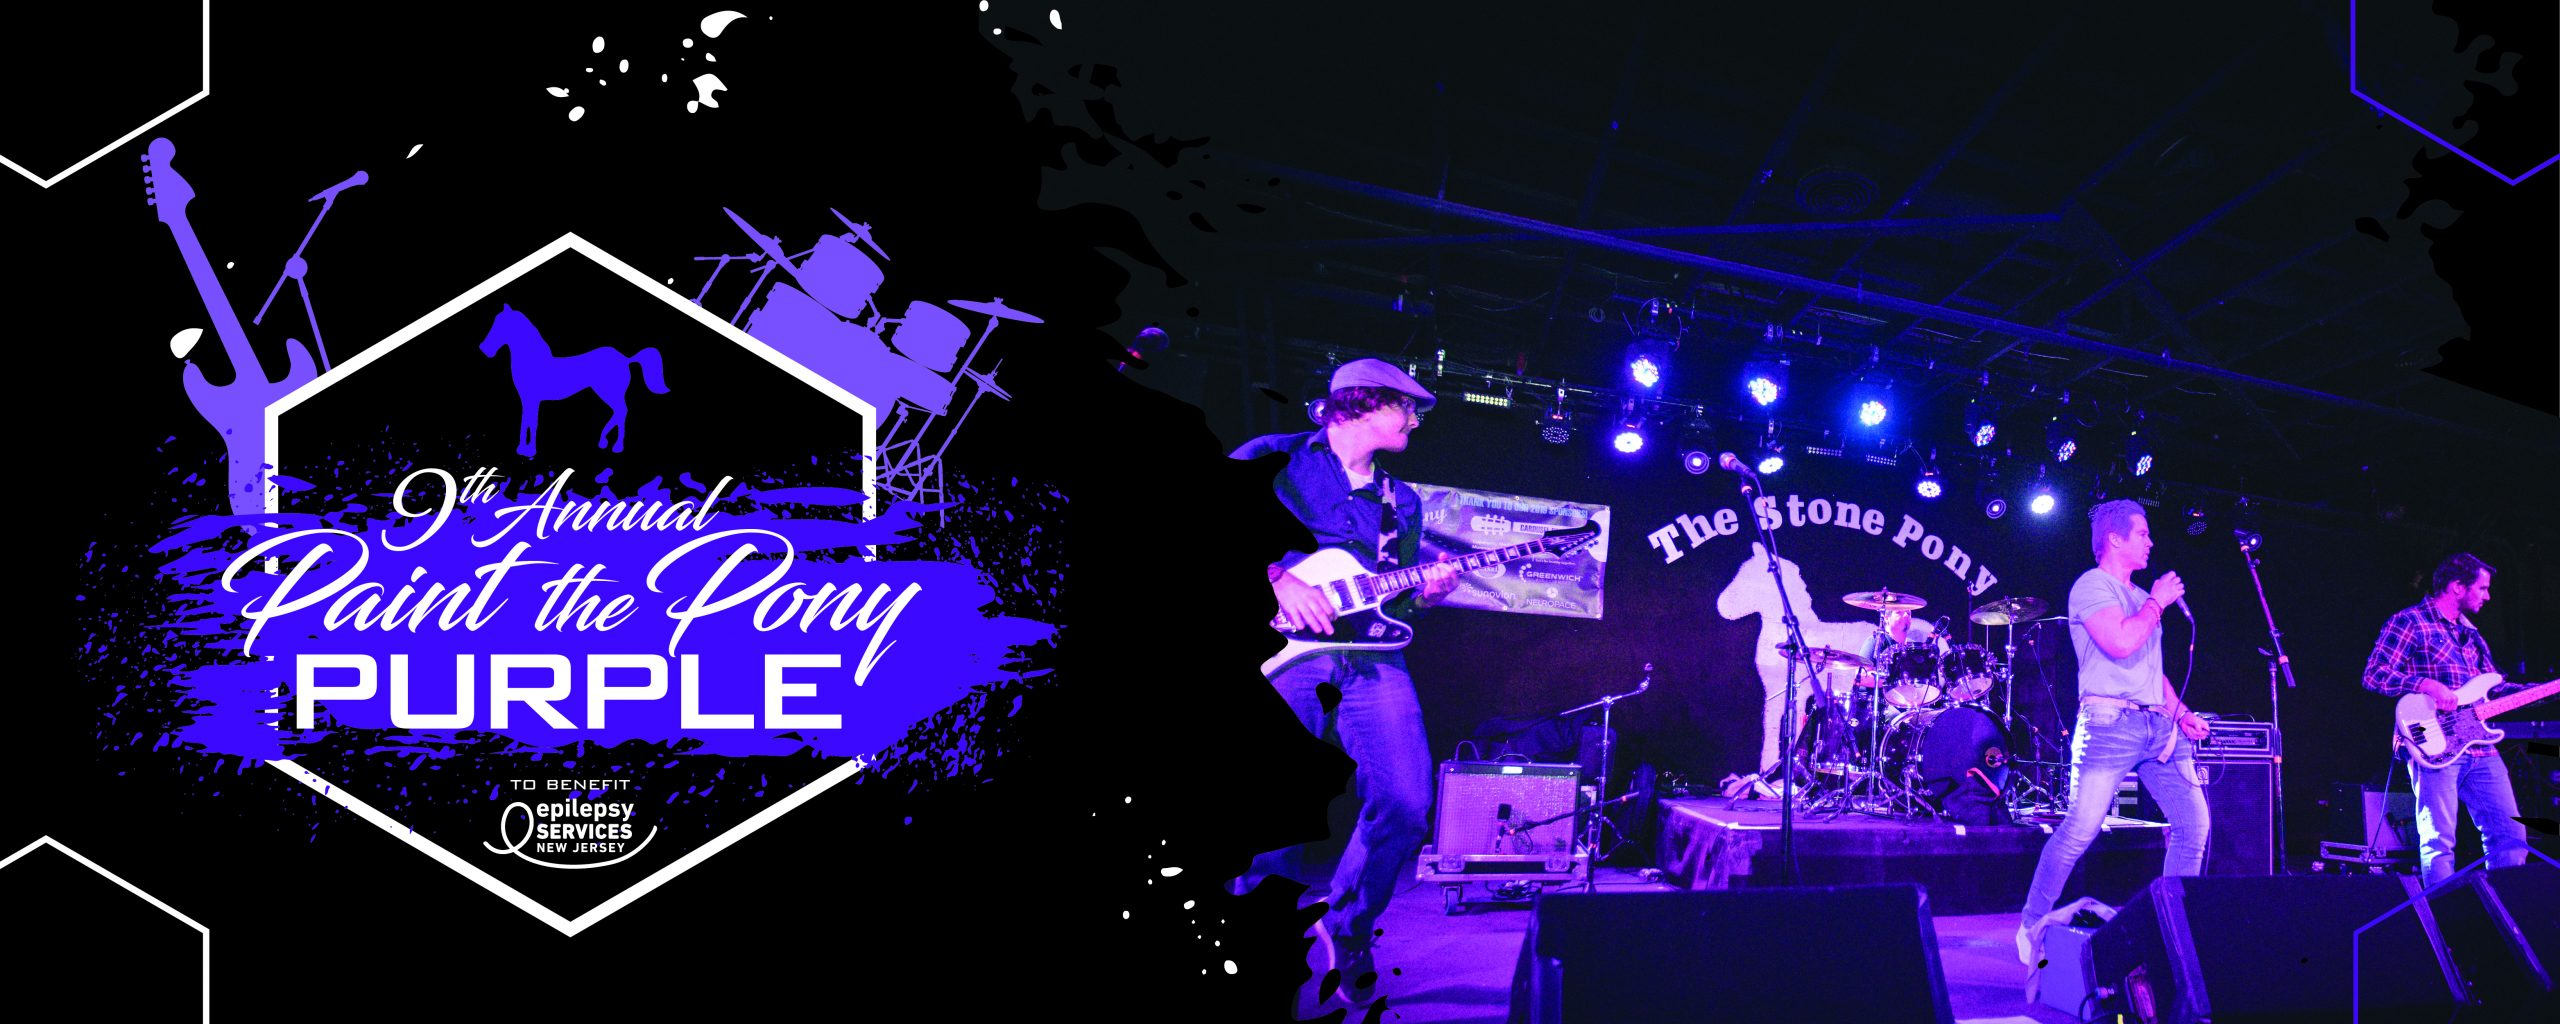 band on stage at the stone pony